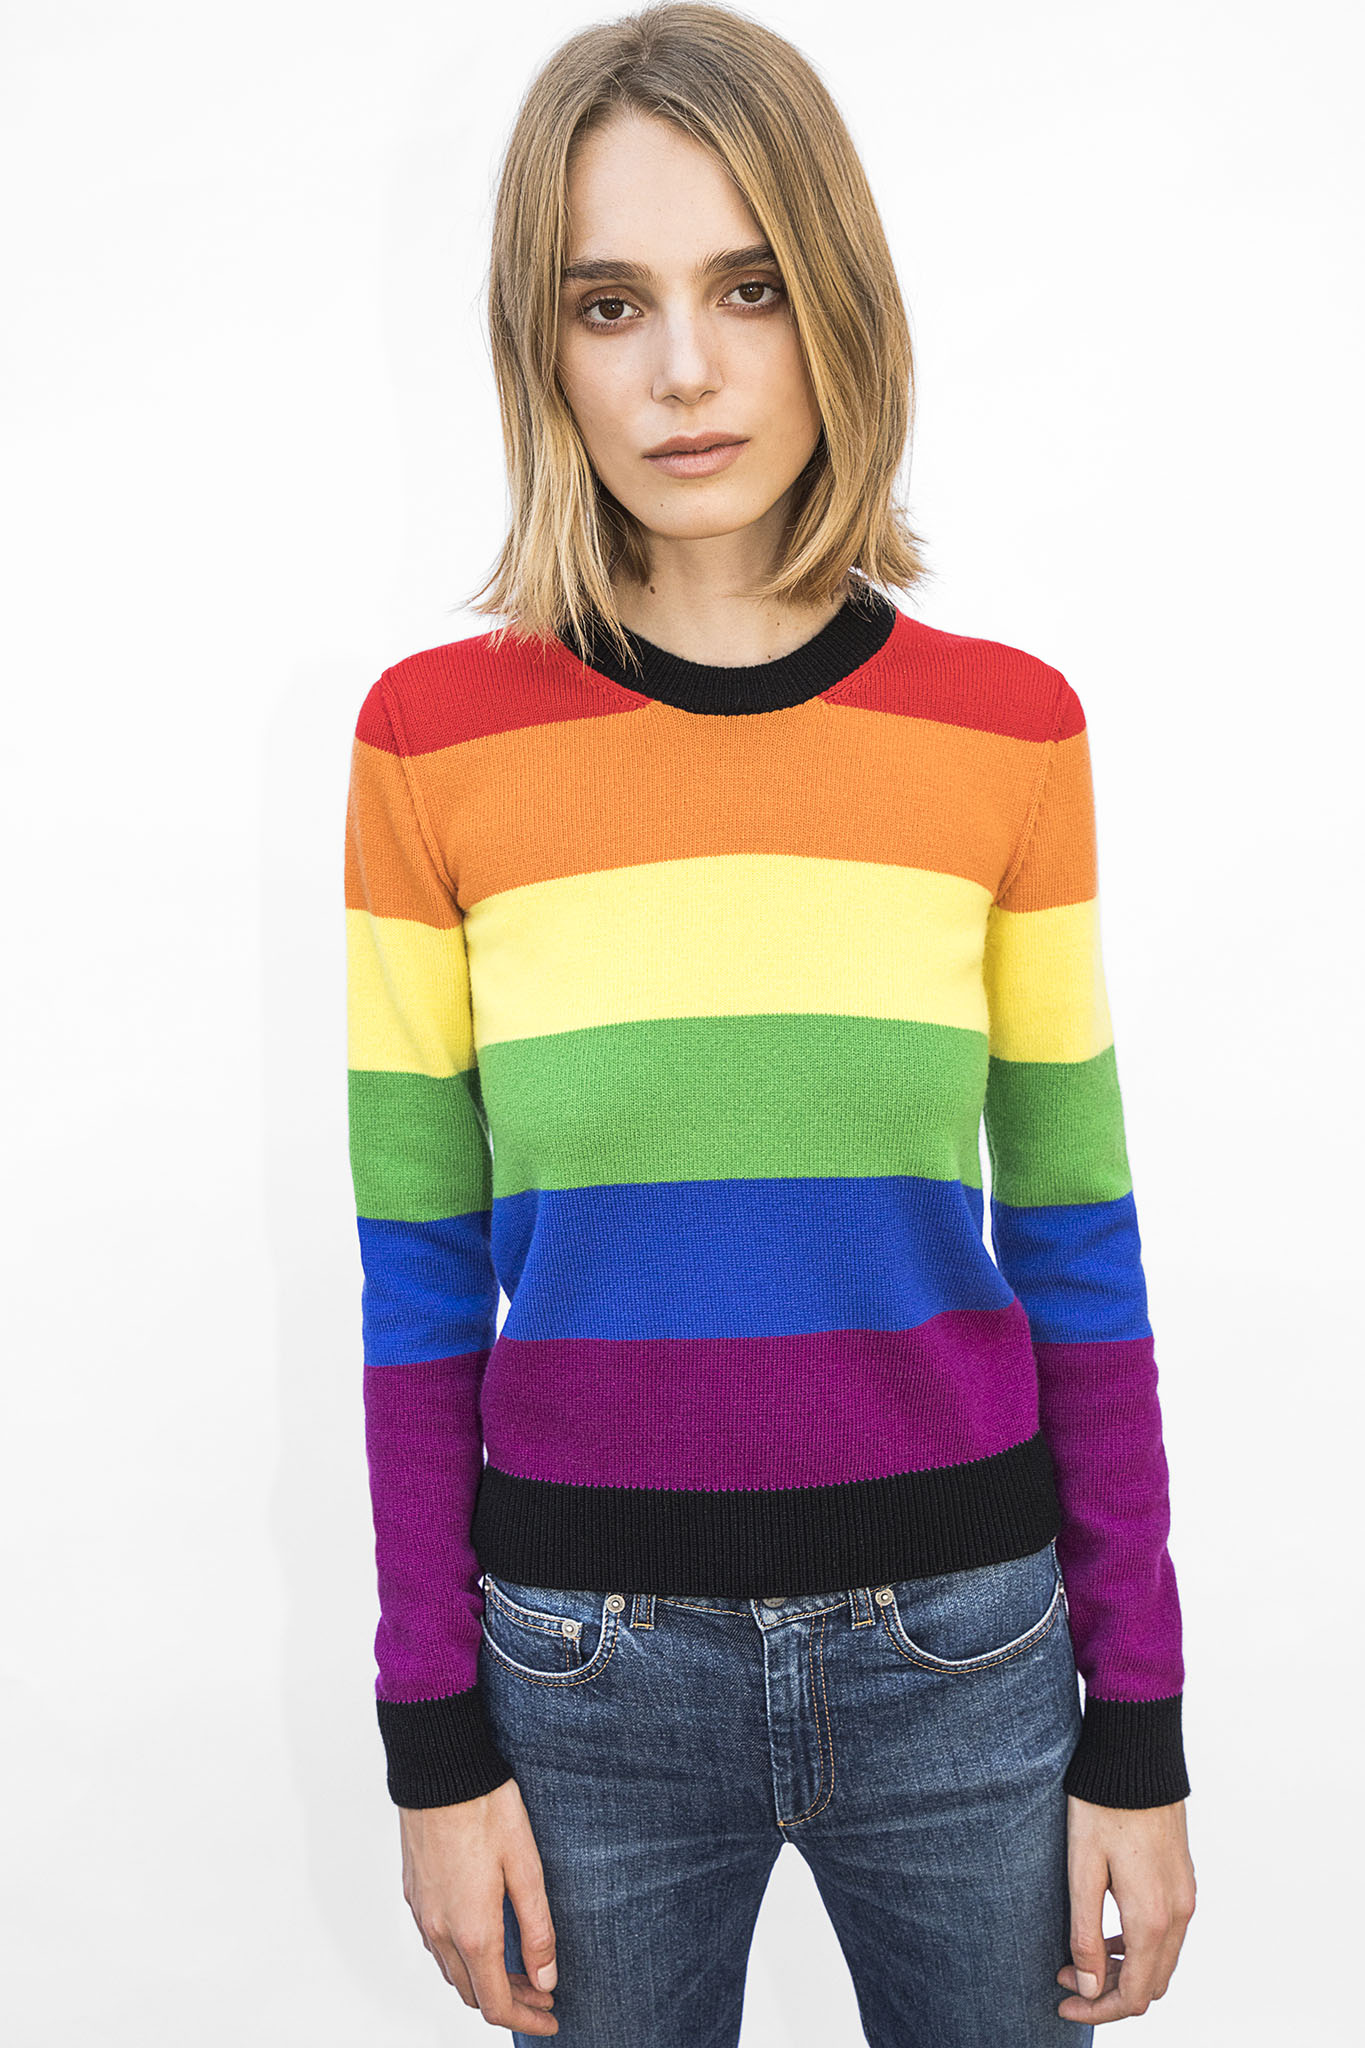 Langley Fox designed a sweater for a Sonia Rykiel charity capsule collection.